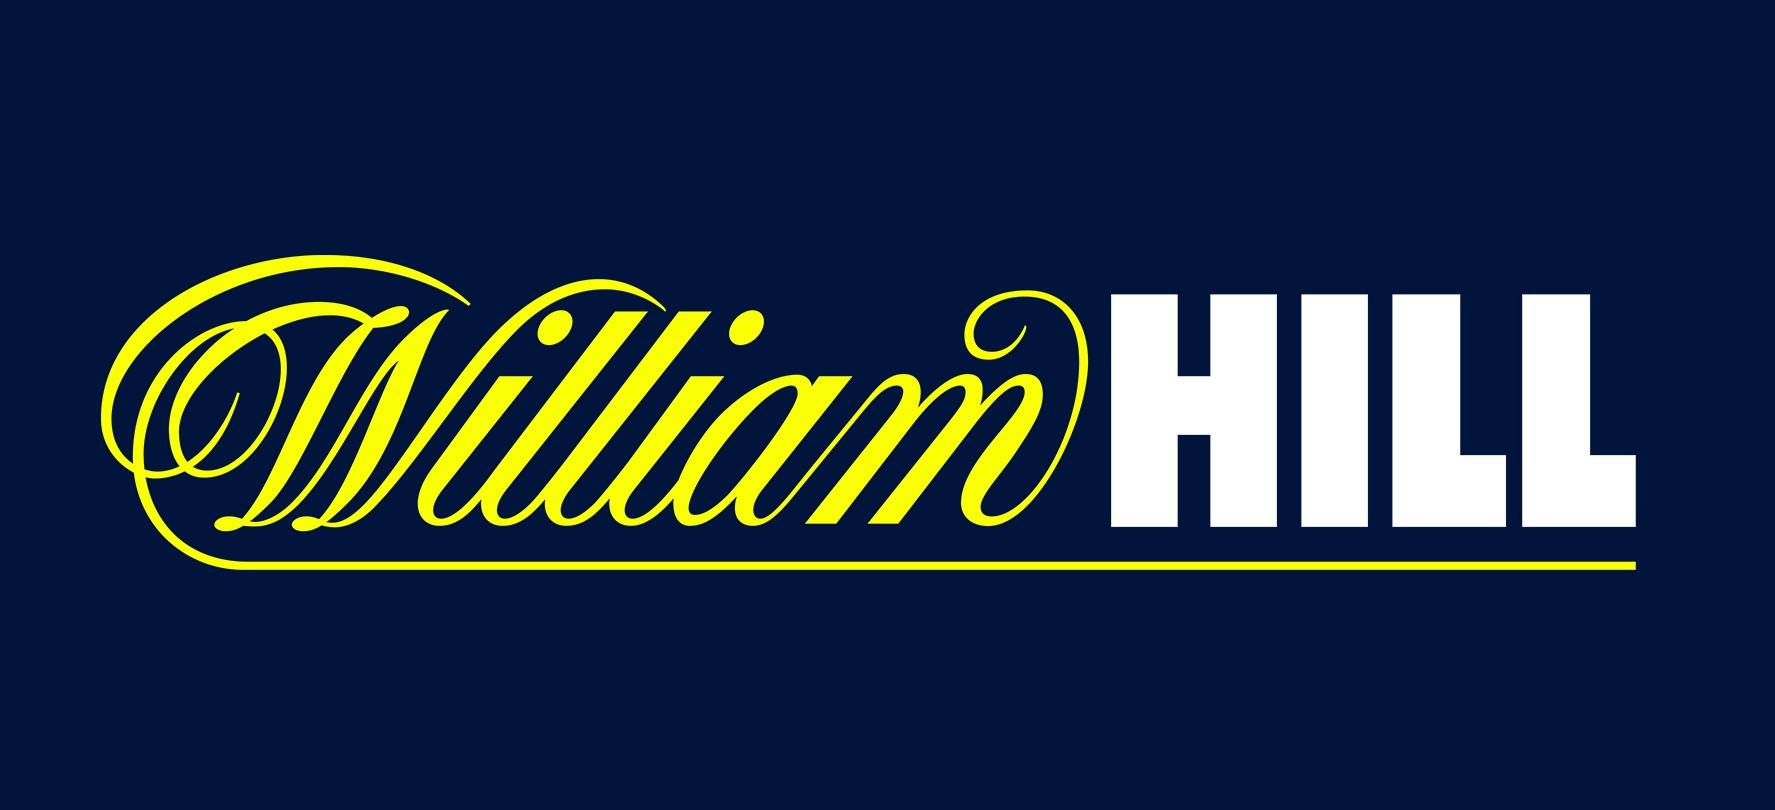 William Hill: Making positive contributions to society